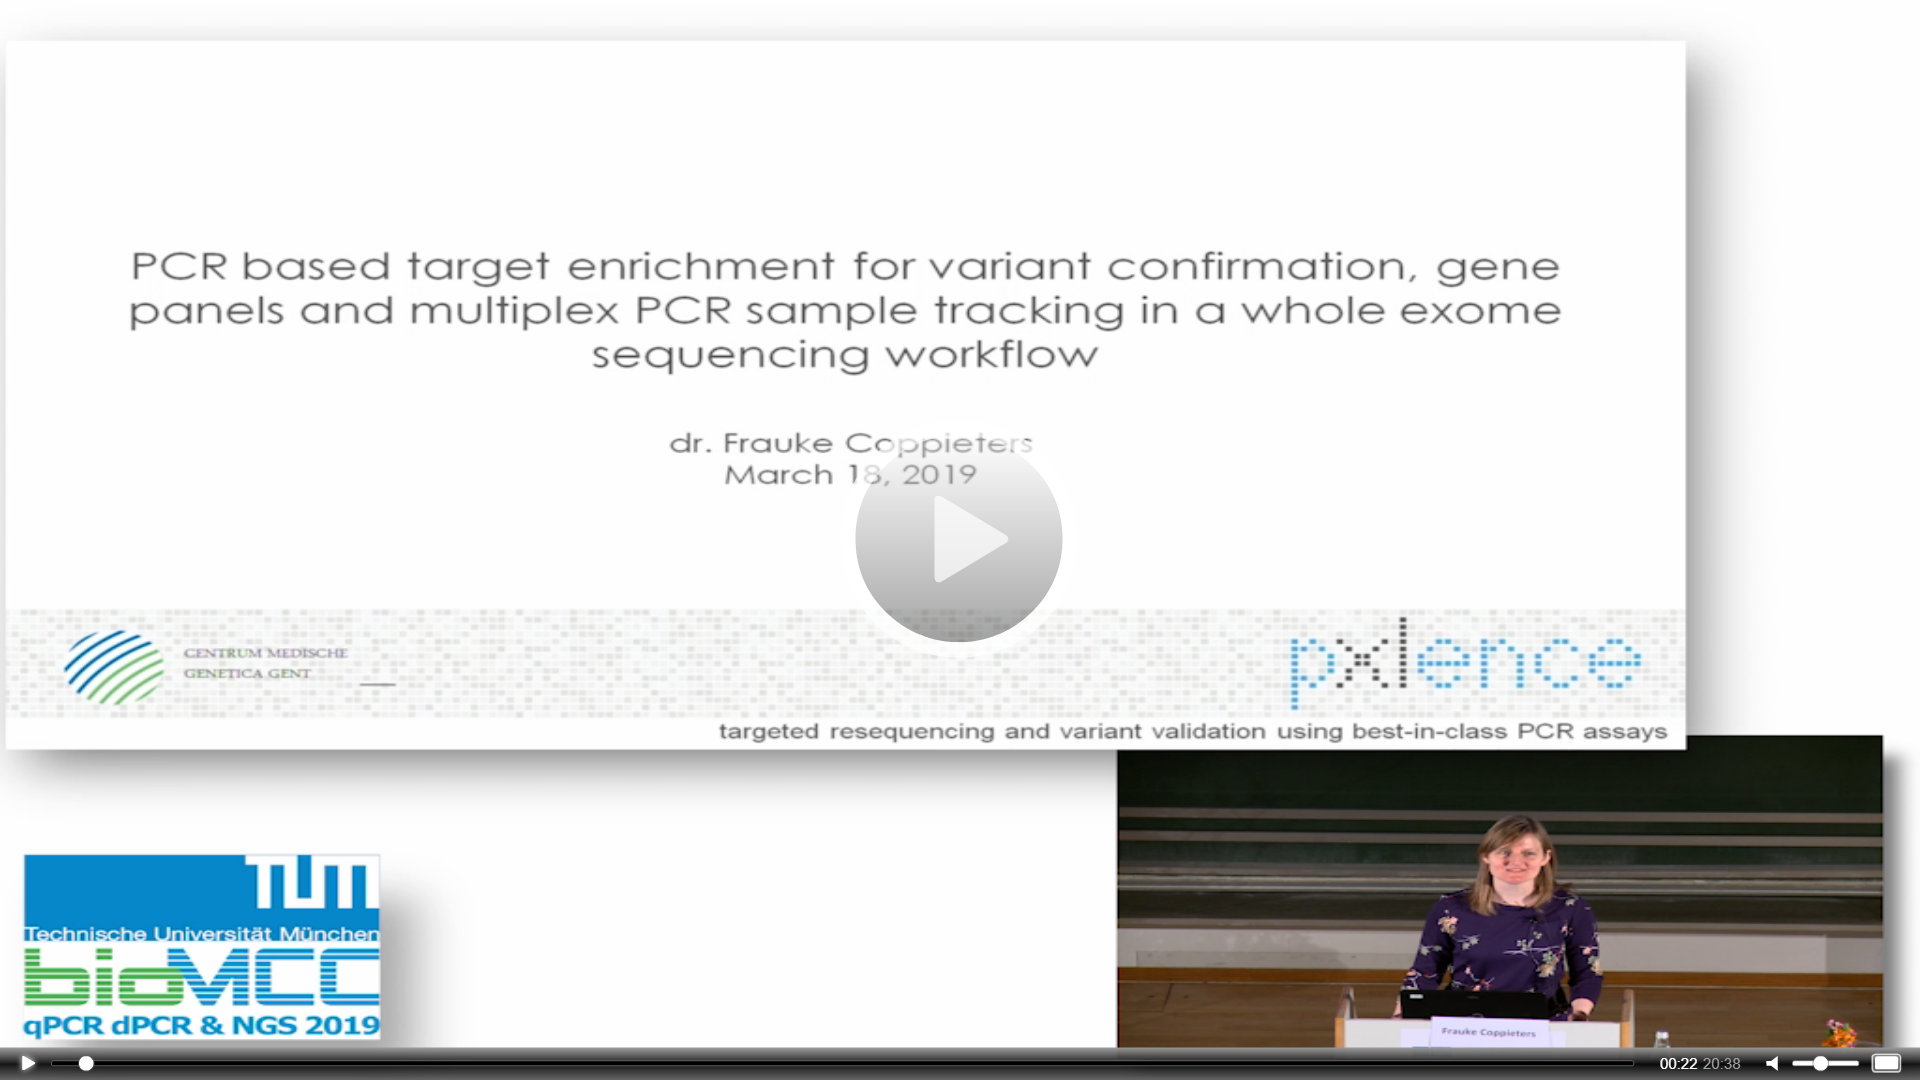 PCR Based Target Enrichment For Variant Confirmation, Gene Panels And Multiplex PCR Sample Tracking In A Whole Exome Sequencing Workflow